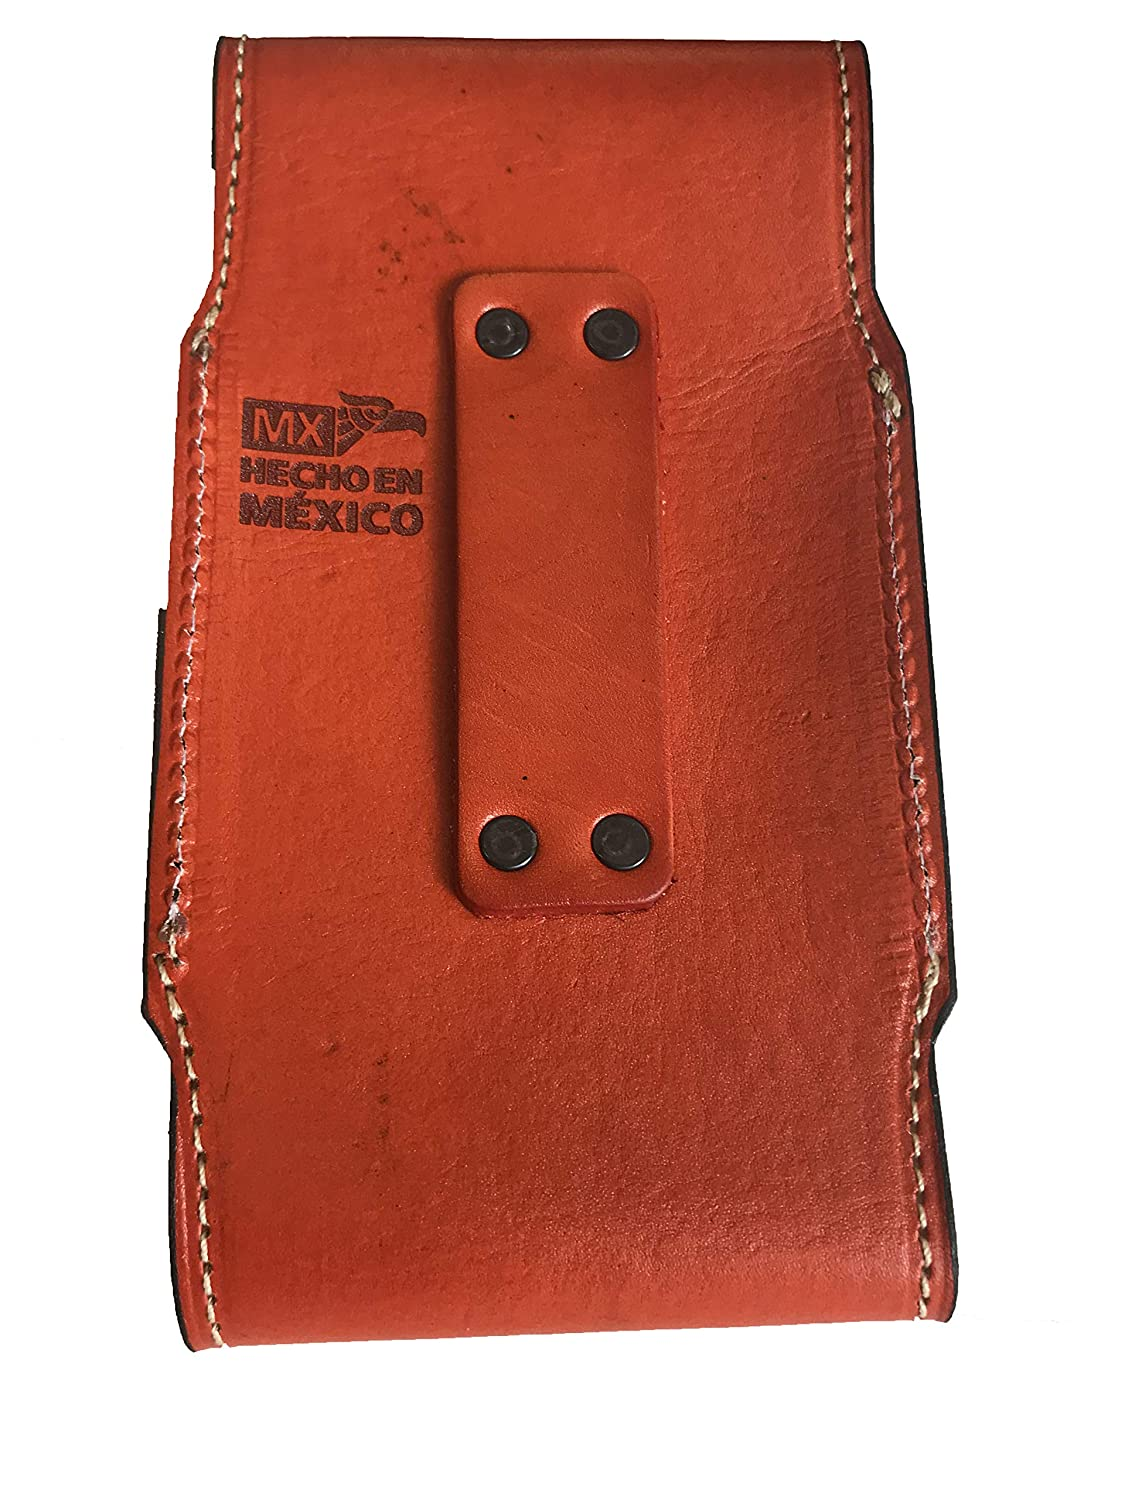 Amazon.com: Cellphone Leather Case Funda de Piel para ...